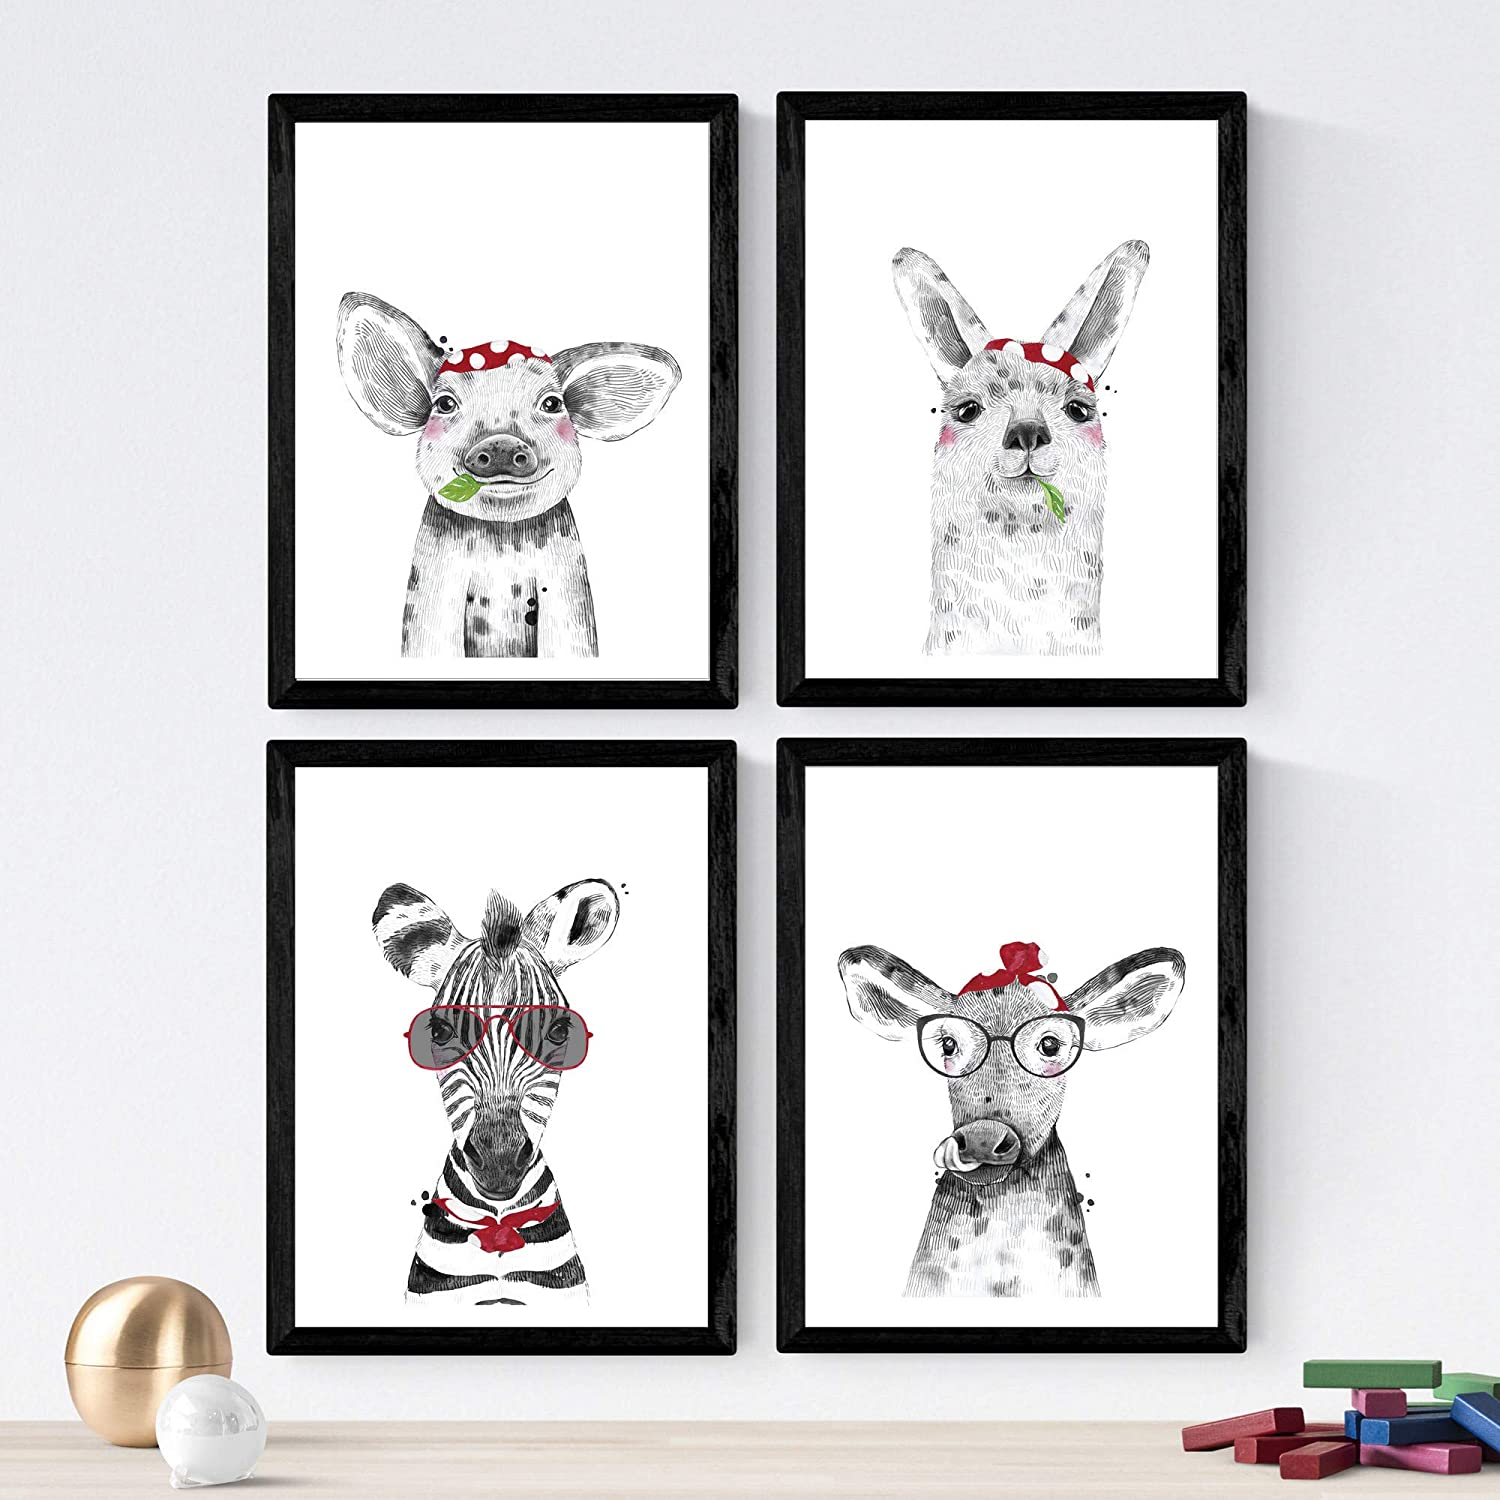 Nacnic Prints Baby Animals - Set of 4 - Unframed 8x11 inch Size - 250g Paper - Beautiful Poster Painting for Home Office Living Room